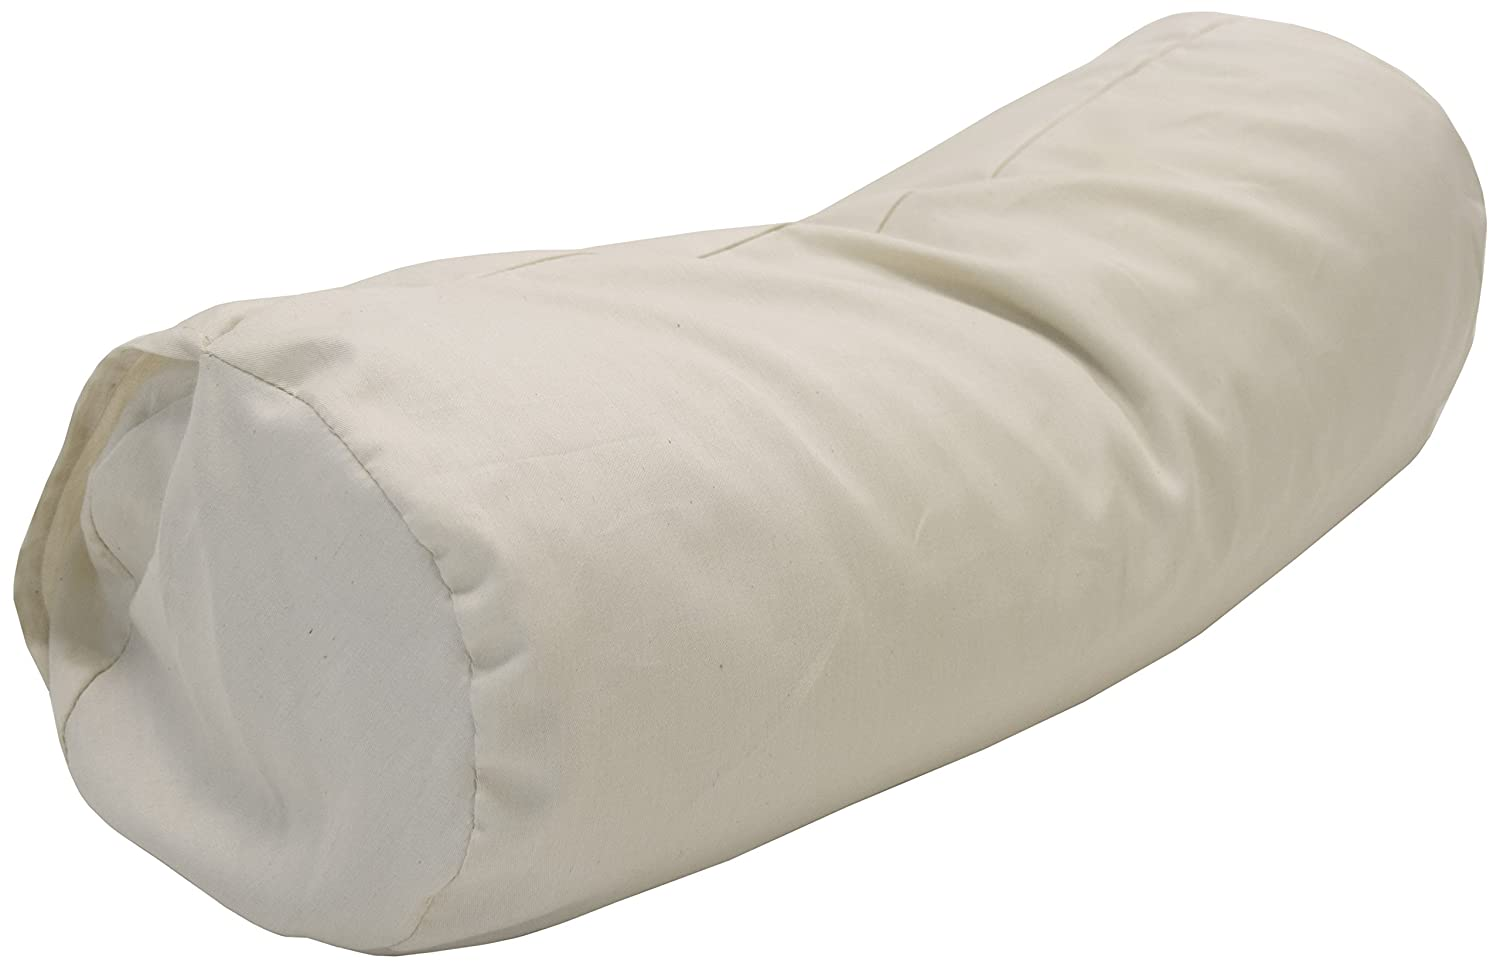 Bean Products Set of 2 - Neck Roll PILLOWCASES - Enclosed Sleeve Style - Wheat Dreamz -100% Certified Organic - Made in USA - Organic Natural